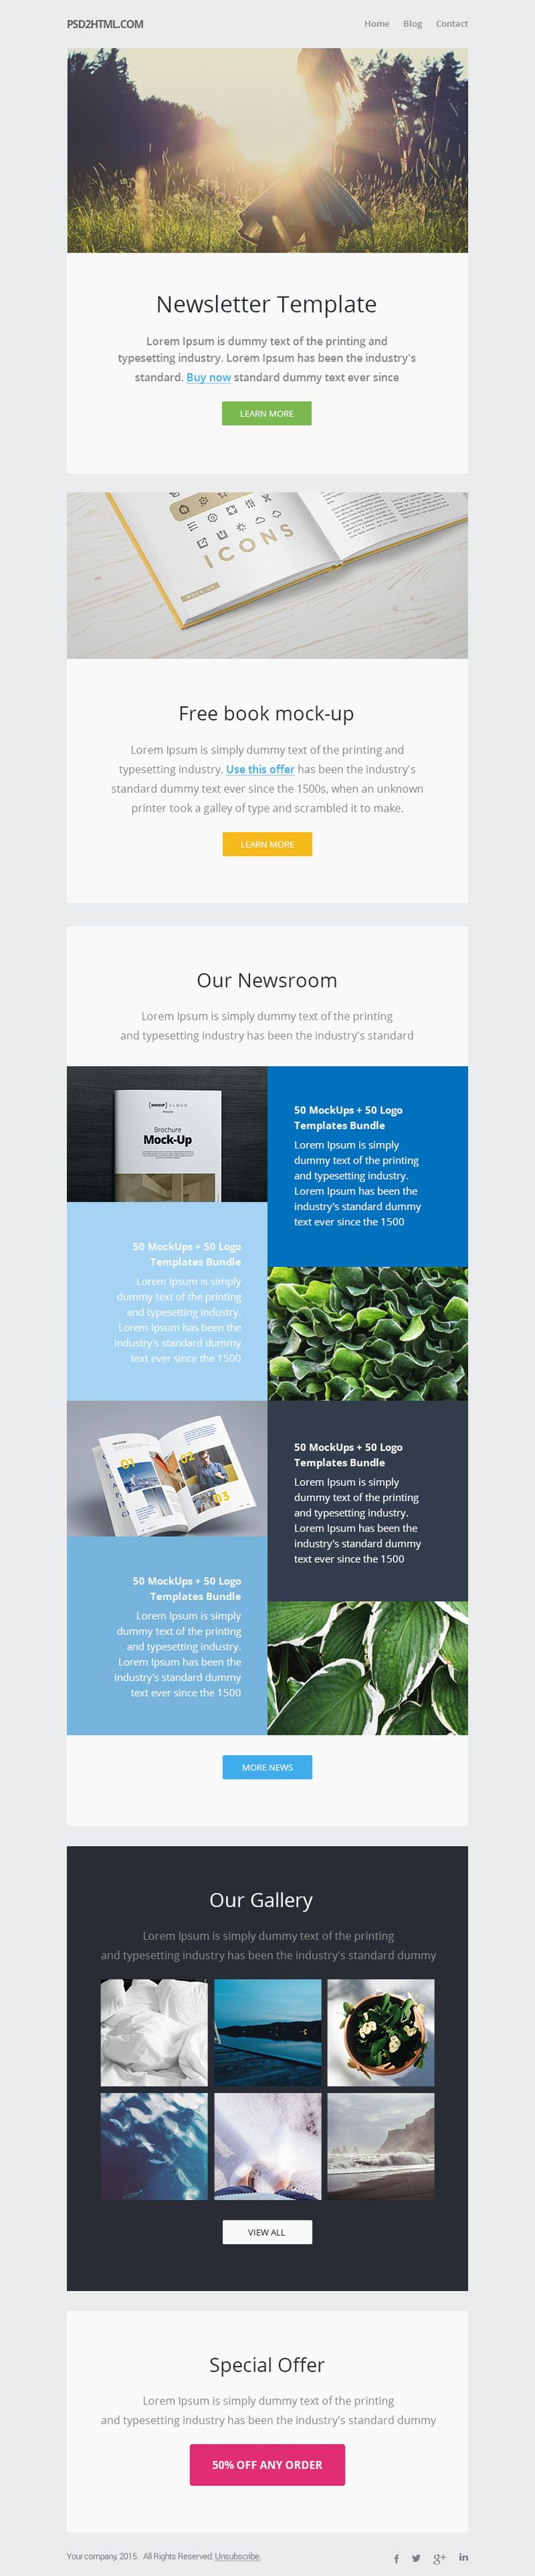 25 best ideas about newsletter template free on pinterest for T shirt printing business proposal letter